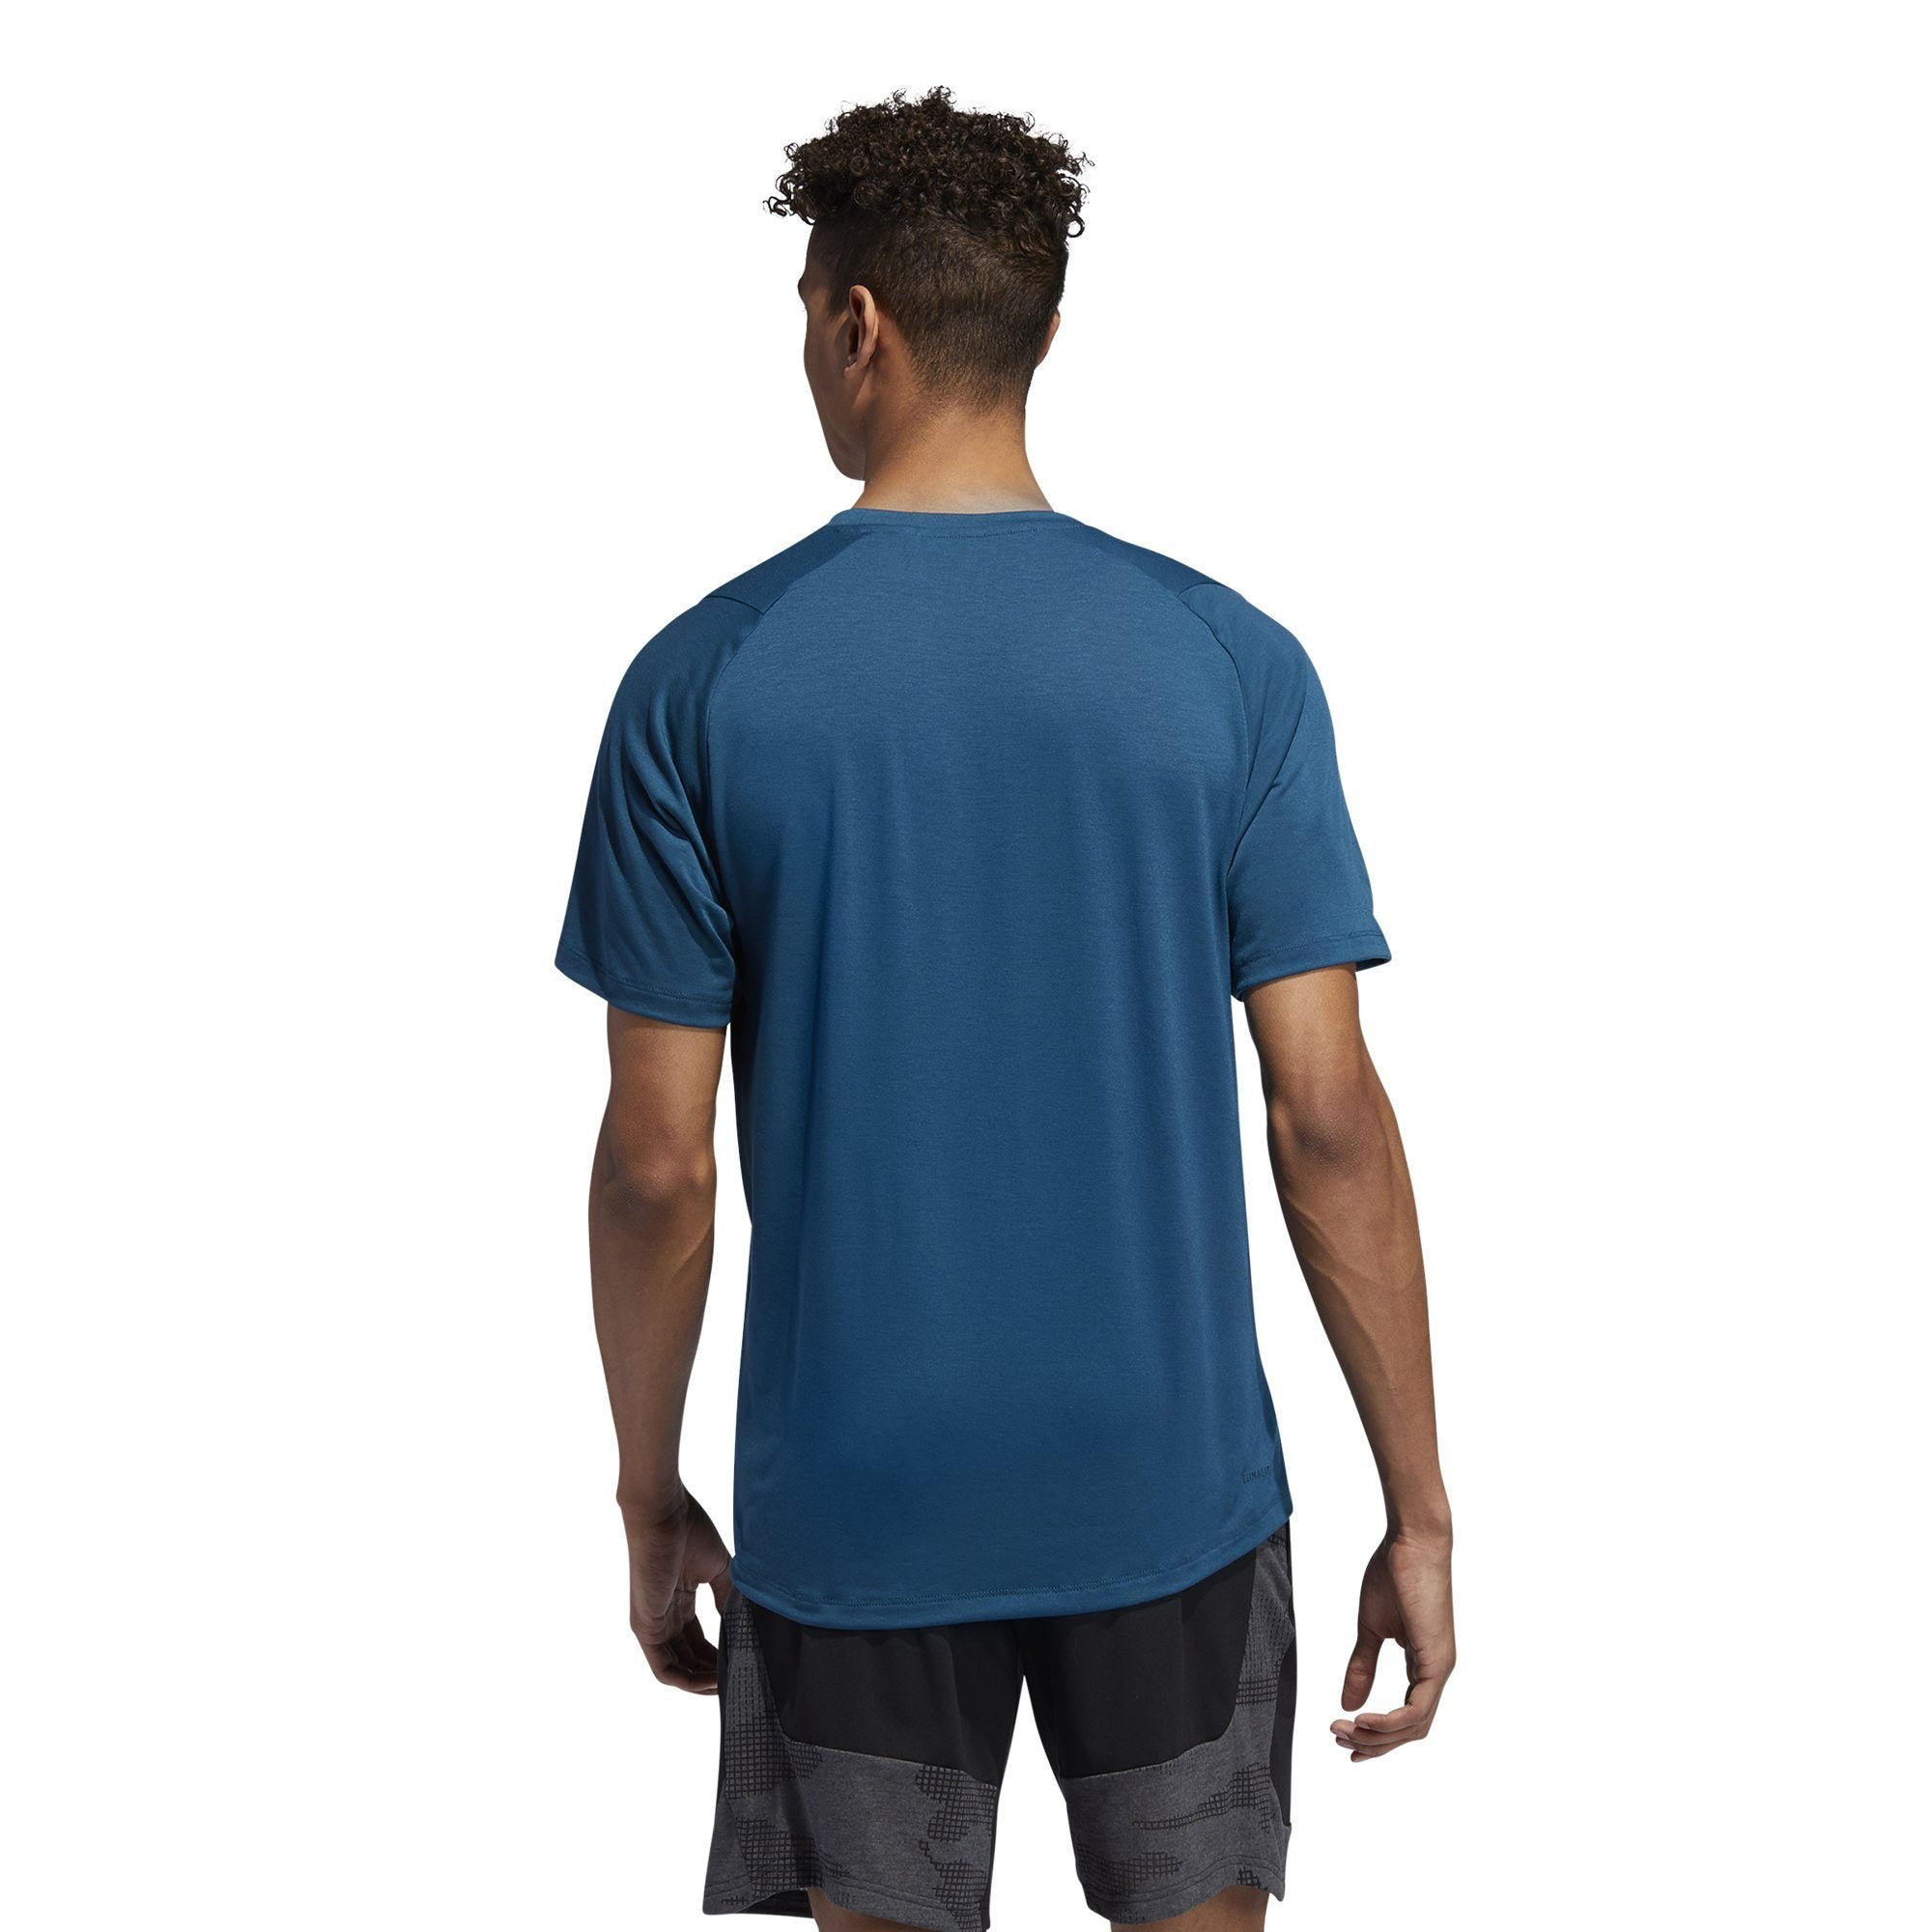 Adidas Mens FreeLift Sport Prime Lite Tee - tech mineral SP-APPARELTEES-MENS Adidas